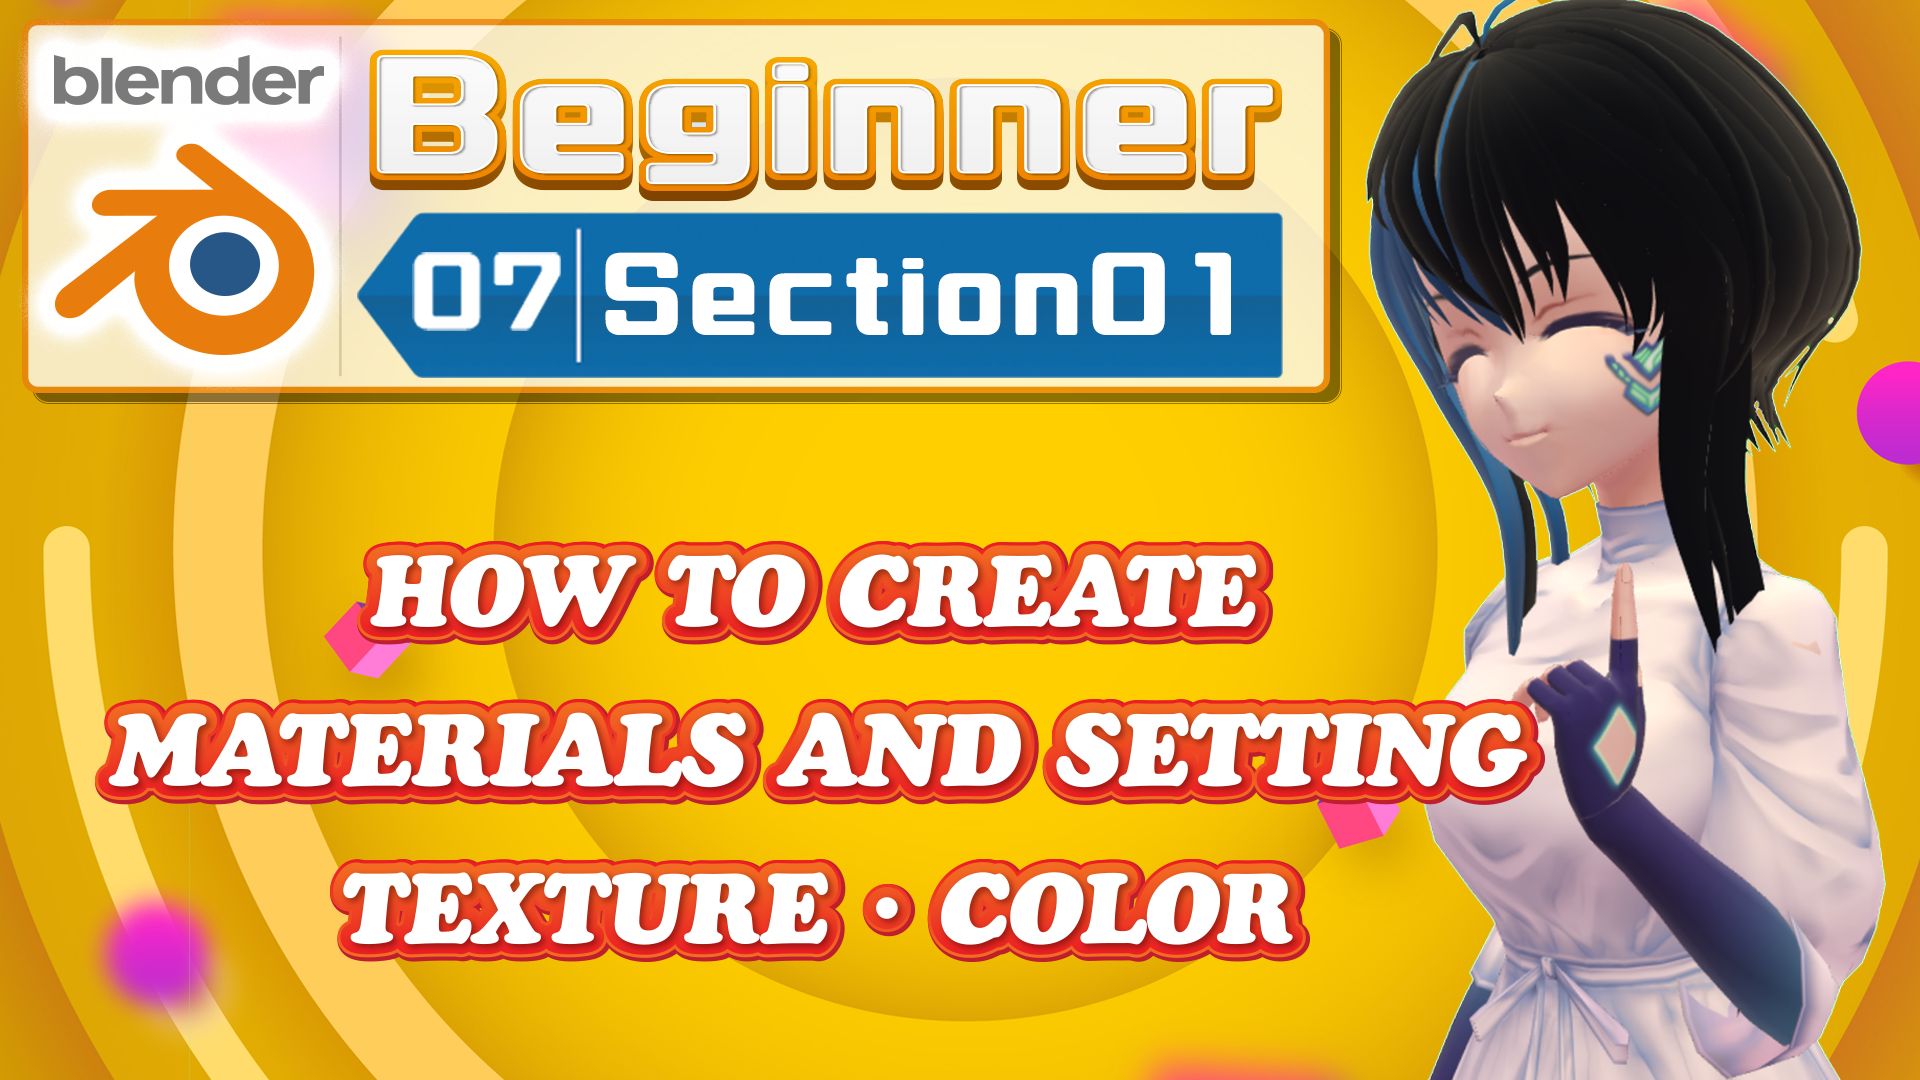 HOW TO CREATE MATERIALS AND SETTING TEXTURE/COLOR